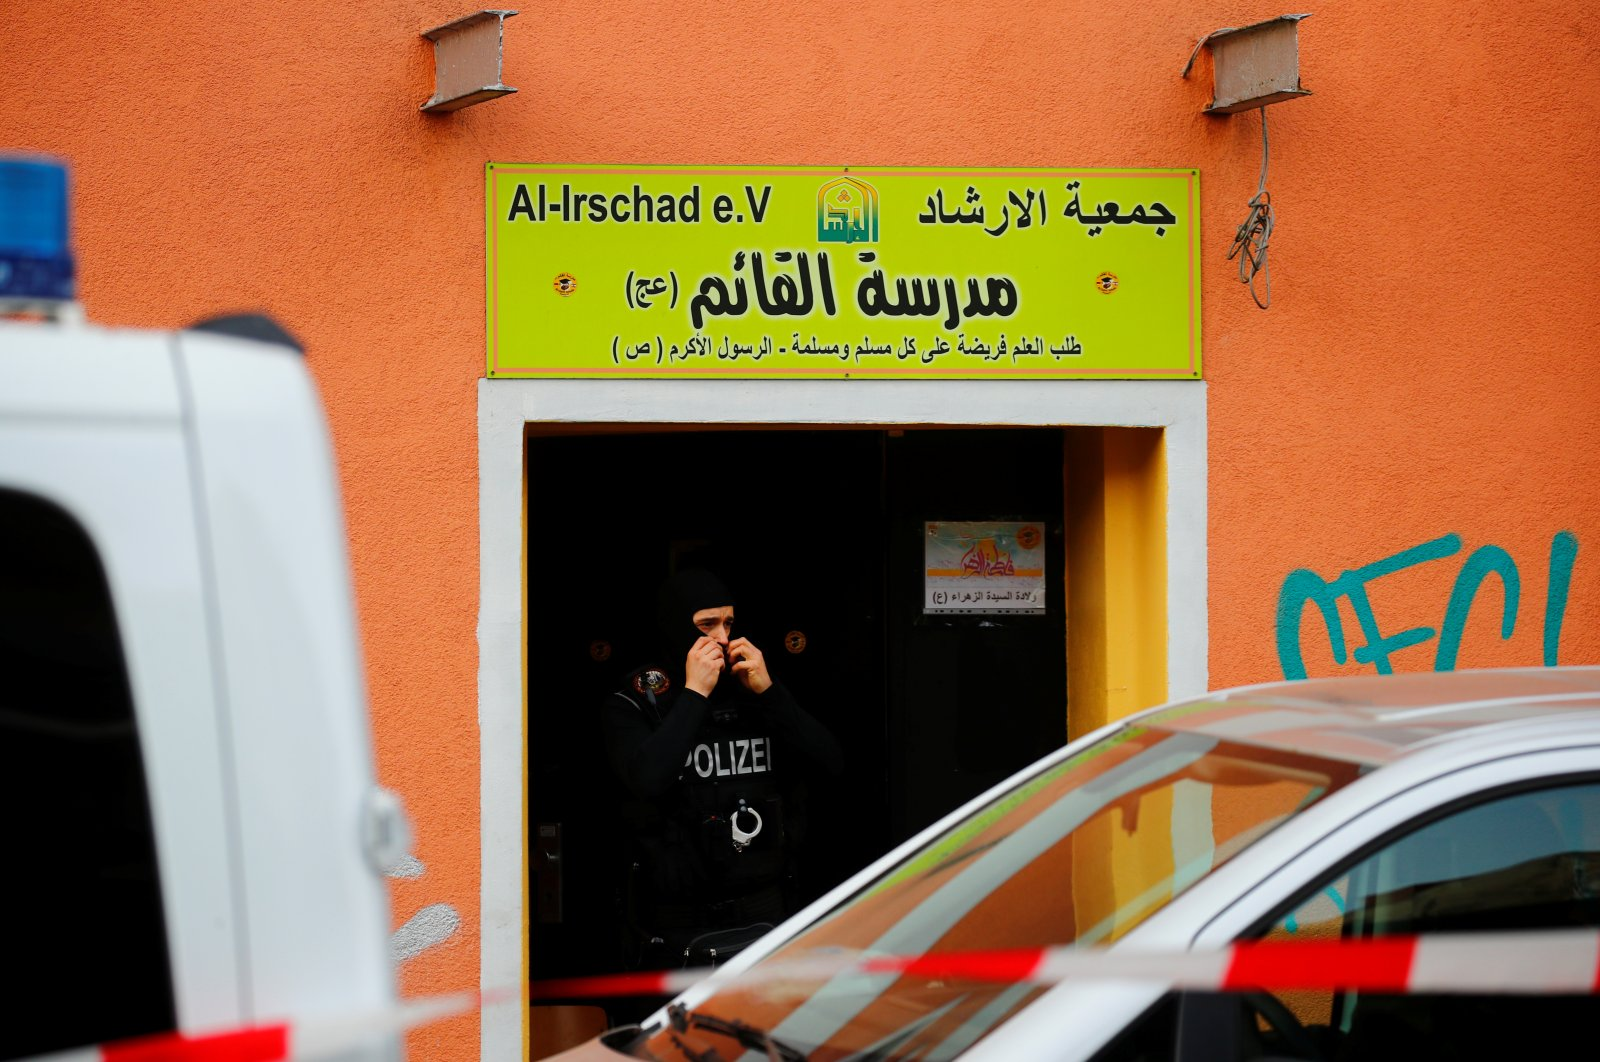 German special police leaves the El-Irschad (Al-Iraschad e.V.) after Germany has banned Iran-backed Hezbollah on its soil and designated it a terrorist organisation, Berlin, Germany, April 30, 2020. (Reuters Photo)